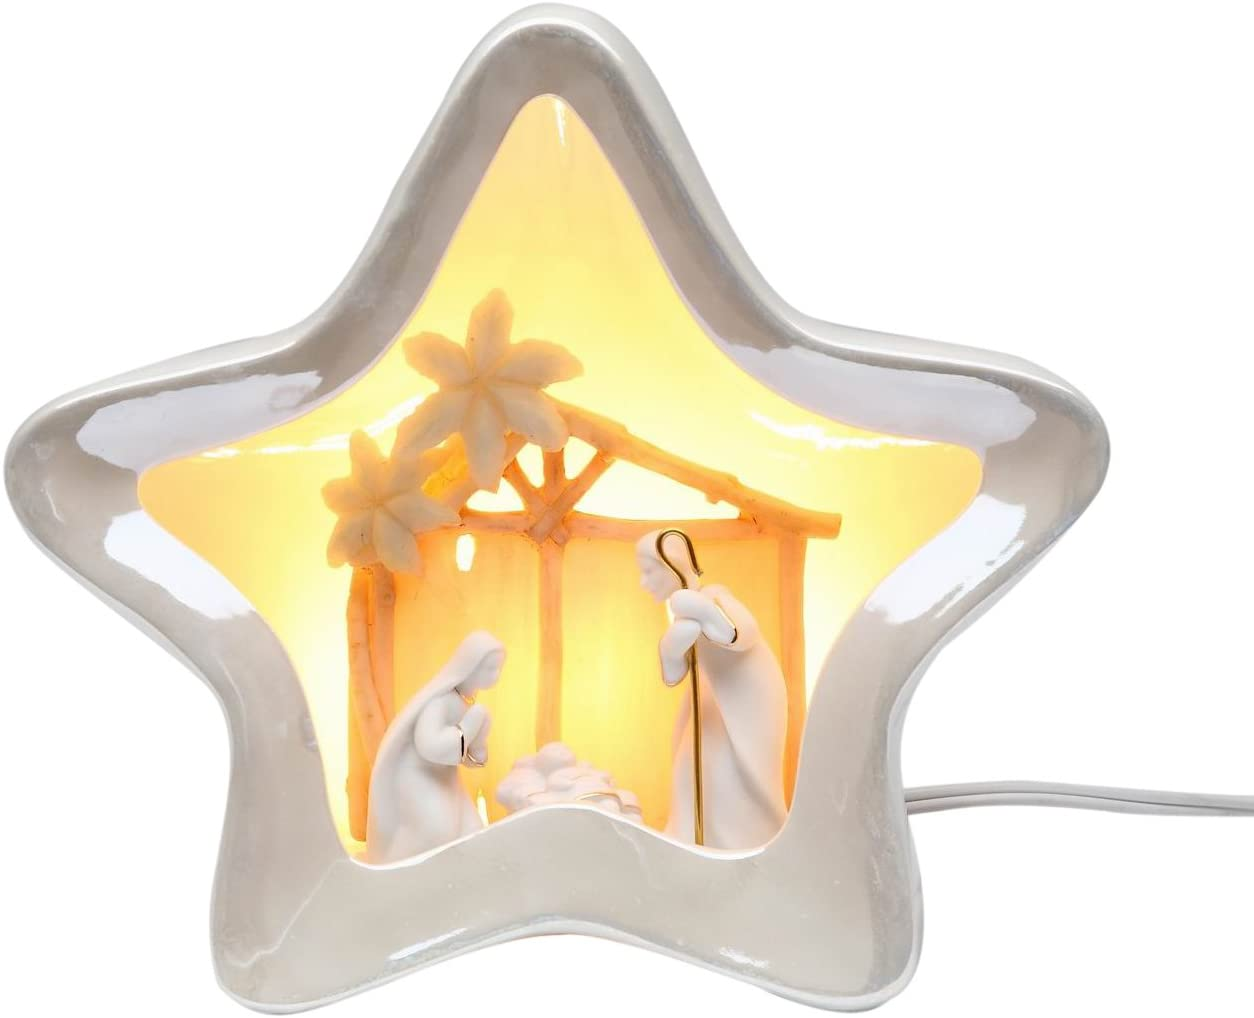 Appletree Design Angel With Hope Night Light Includes Cord 9-1//2-Inch Tall